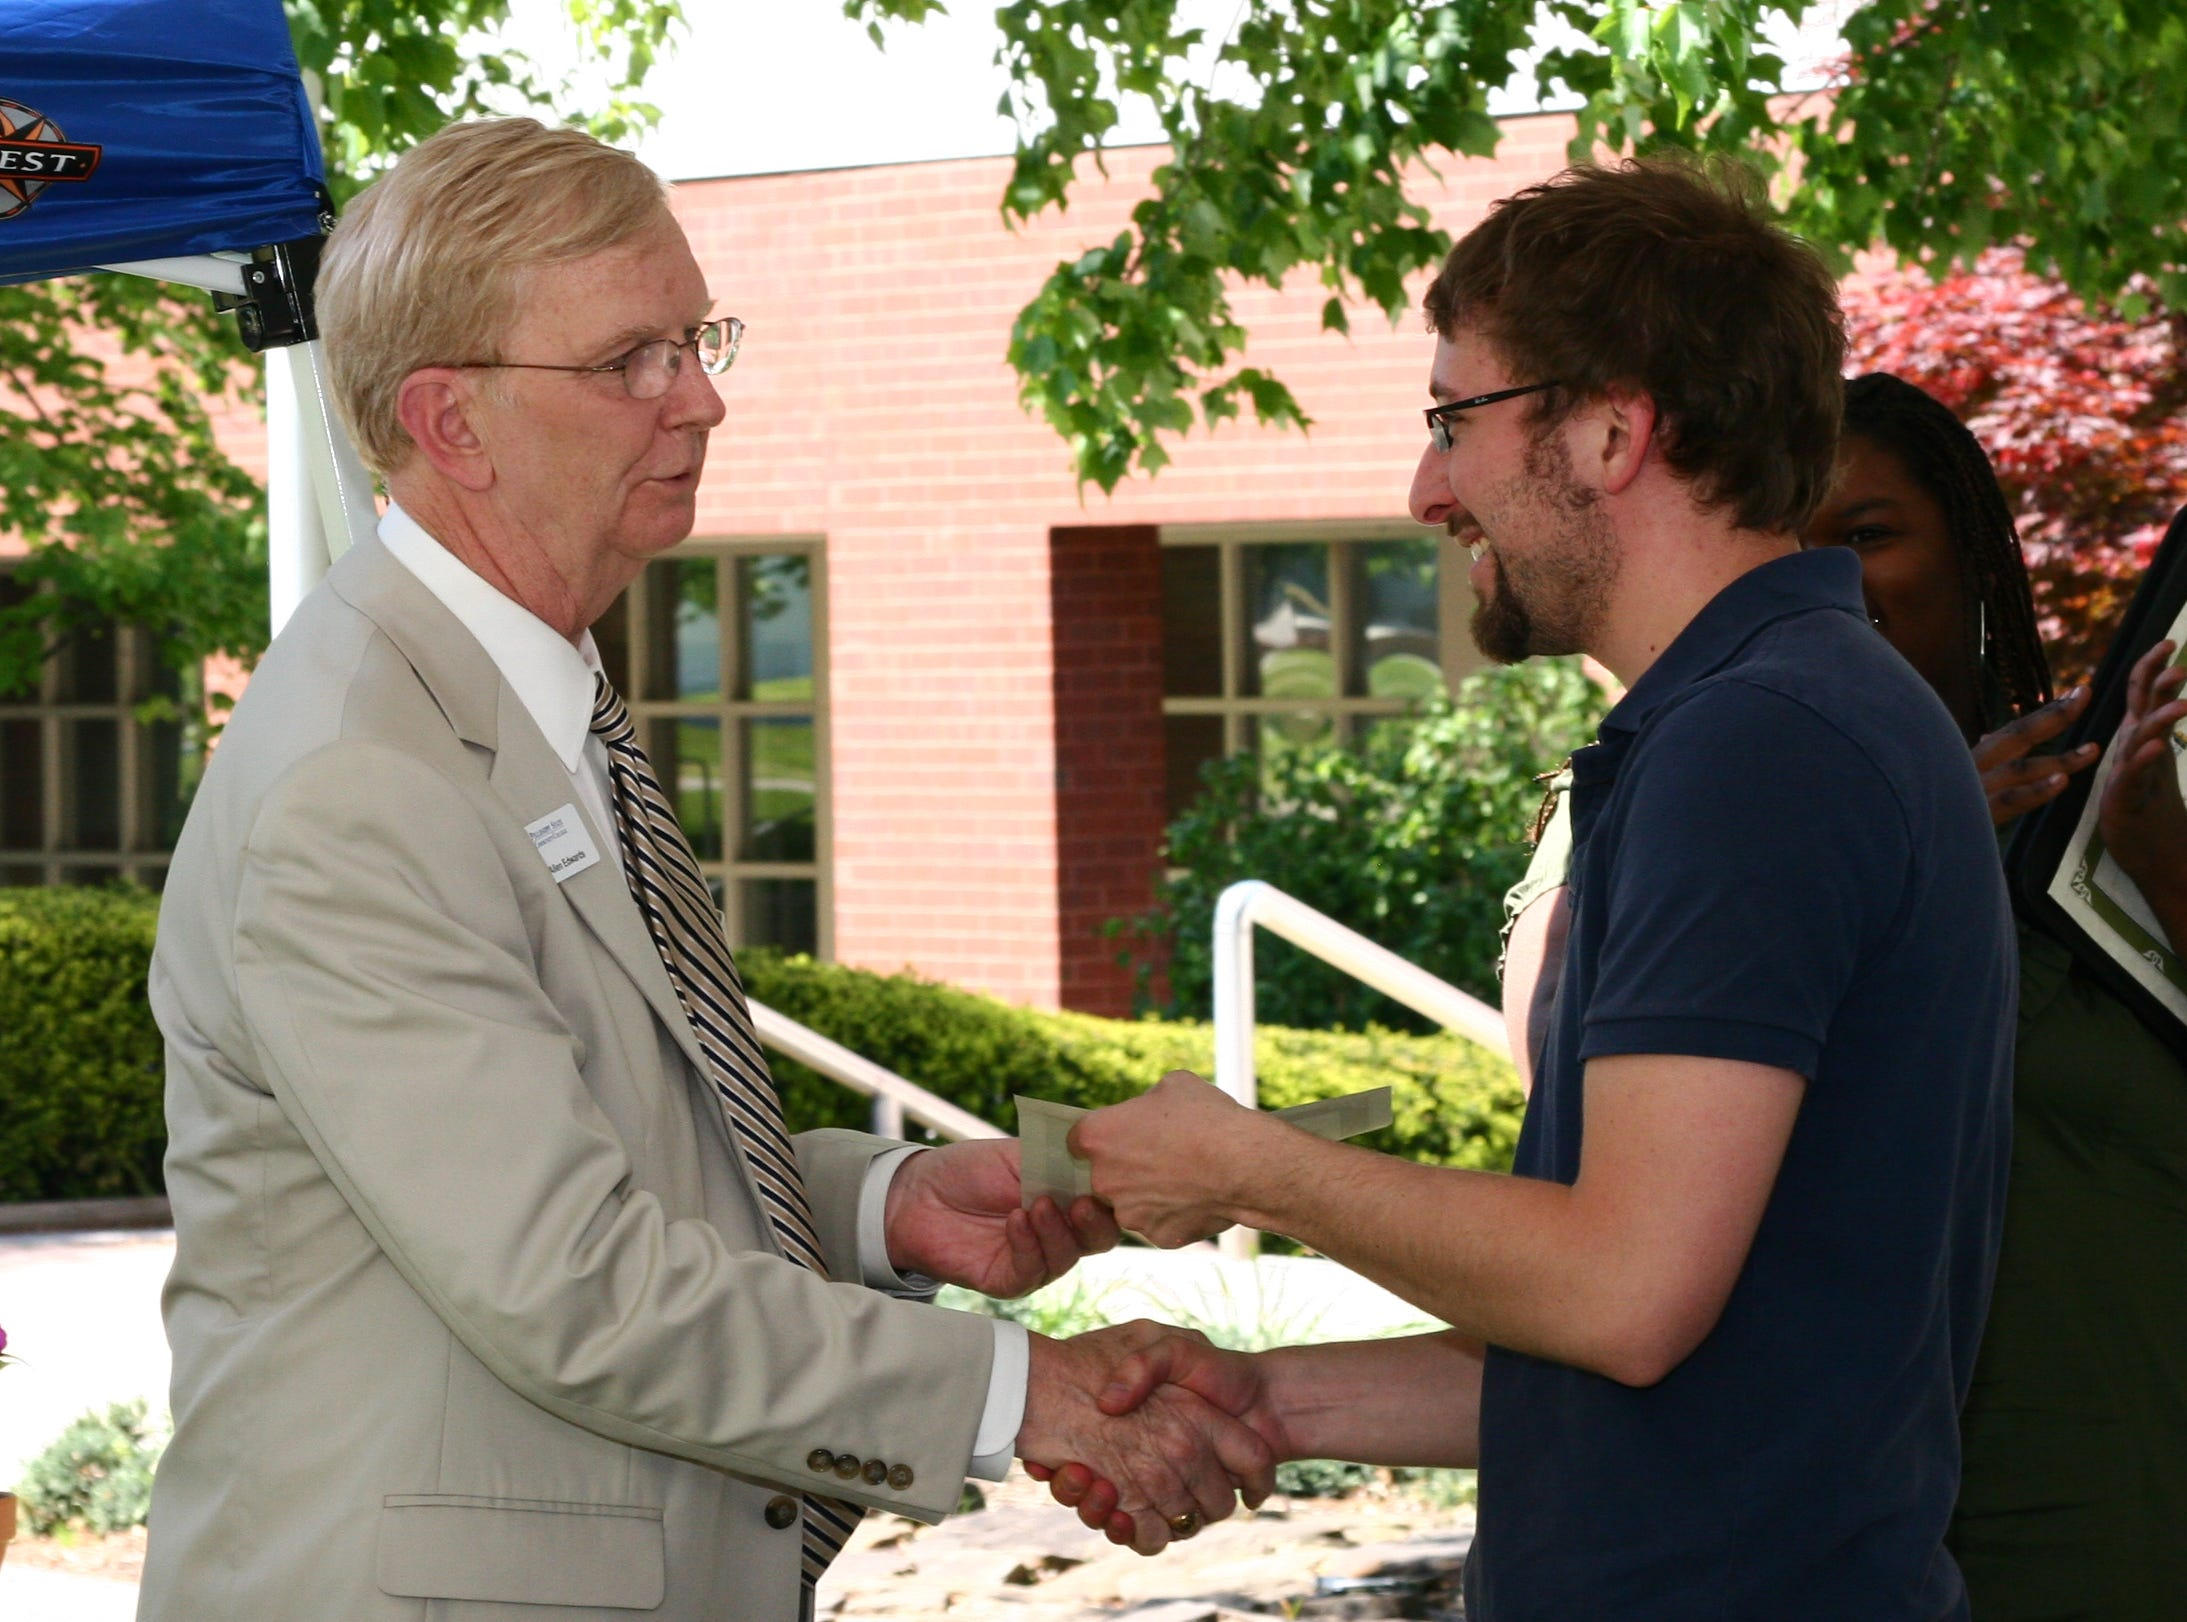 Pellissippi State Community College President Allen Edwards congratulates student Steven McLaurin on his achievements with Student Activities April 30, 2010.